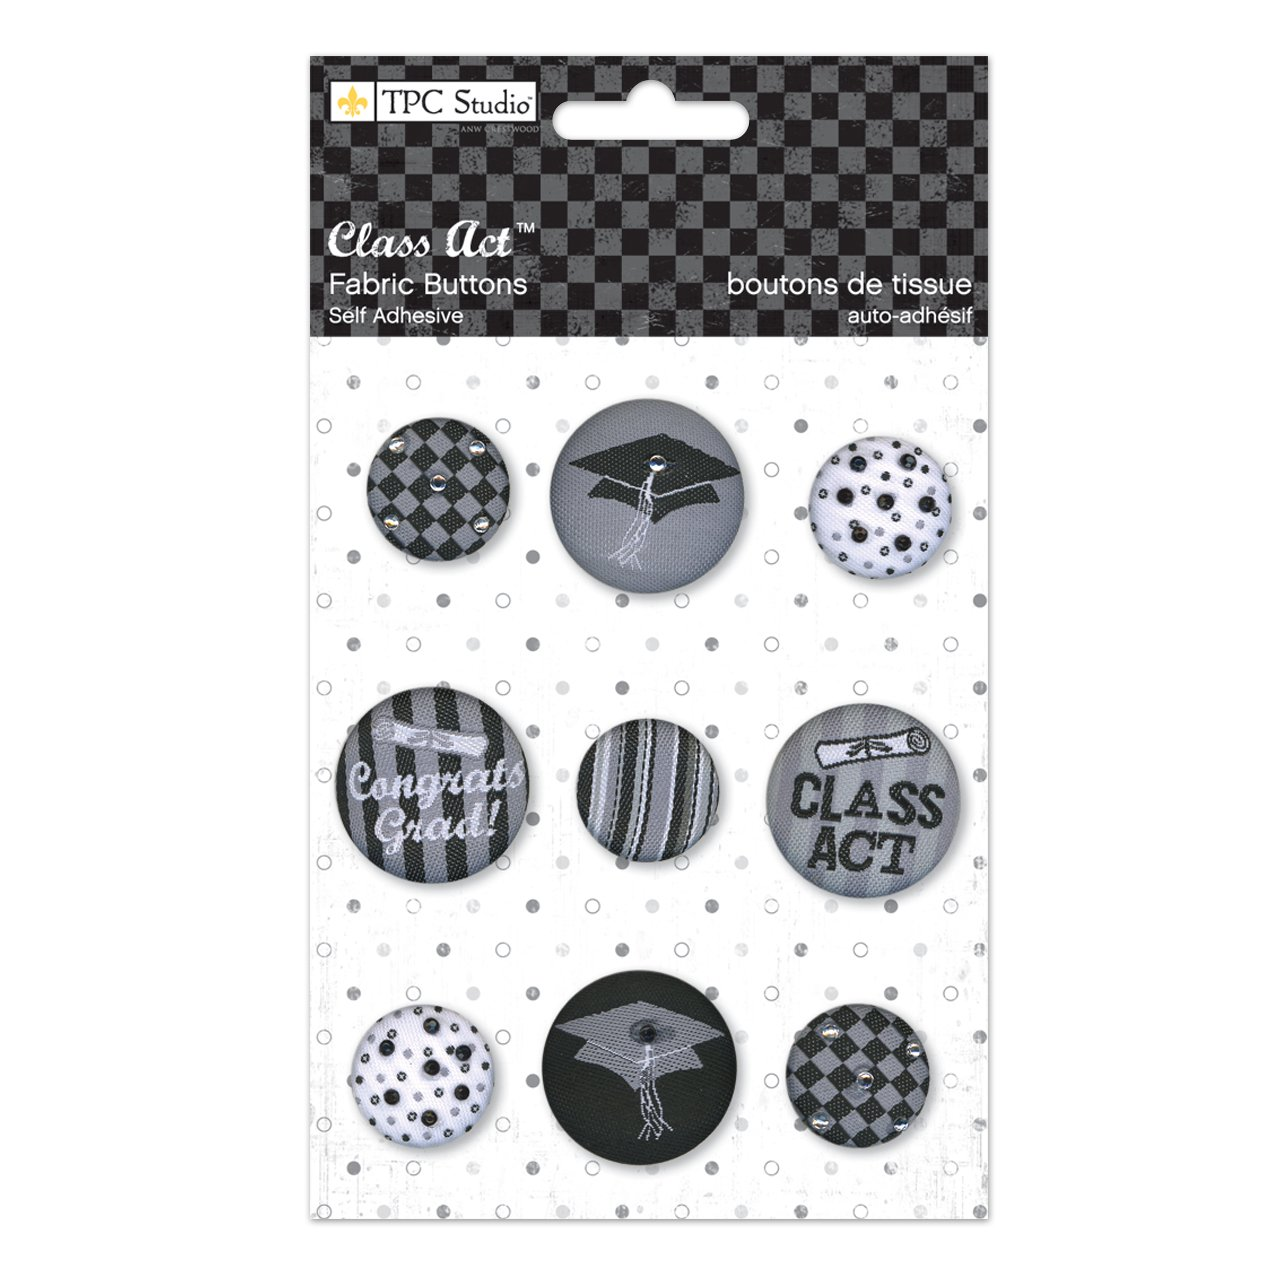 The Paper Company, 2010157, Class Act Fabric Buttons by THE PAPER COMPANY   B003DNR4MI